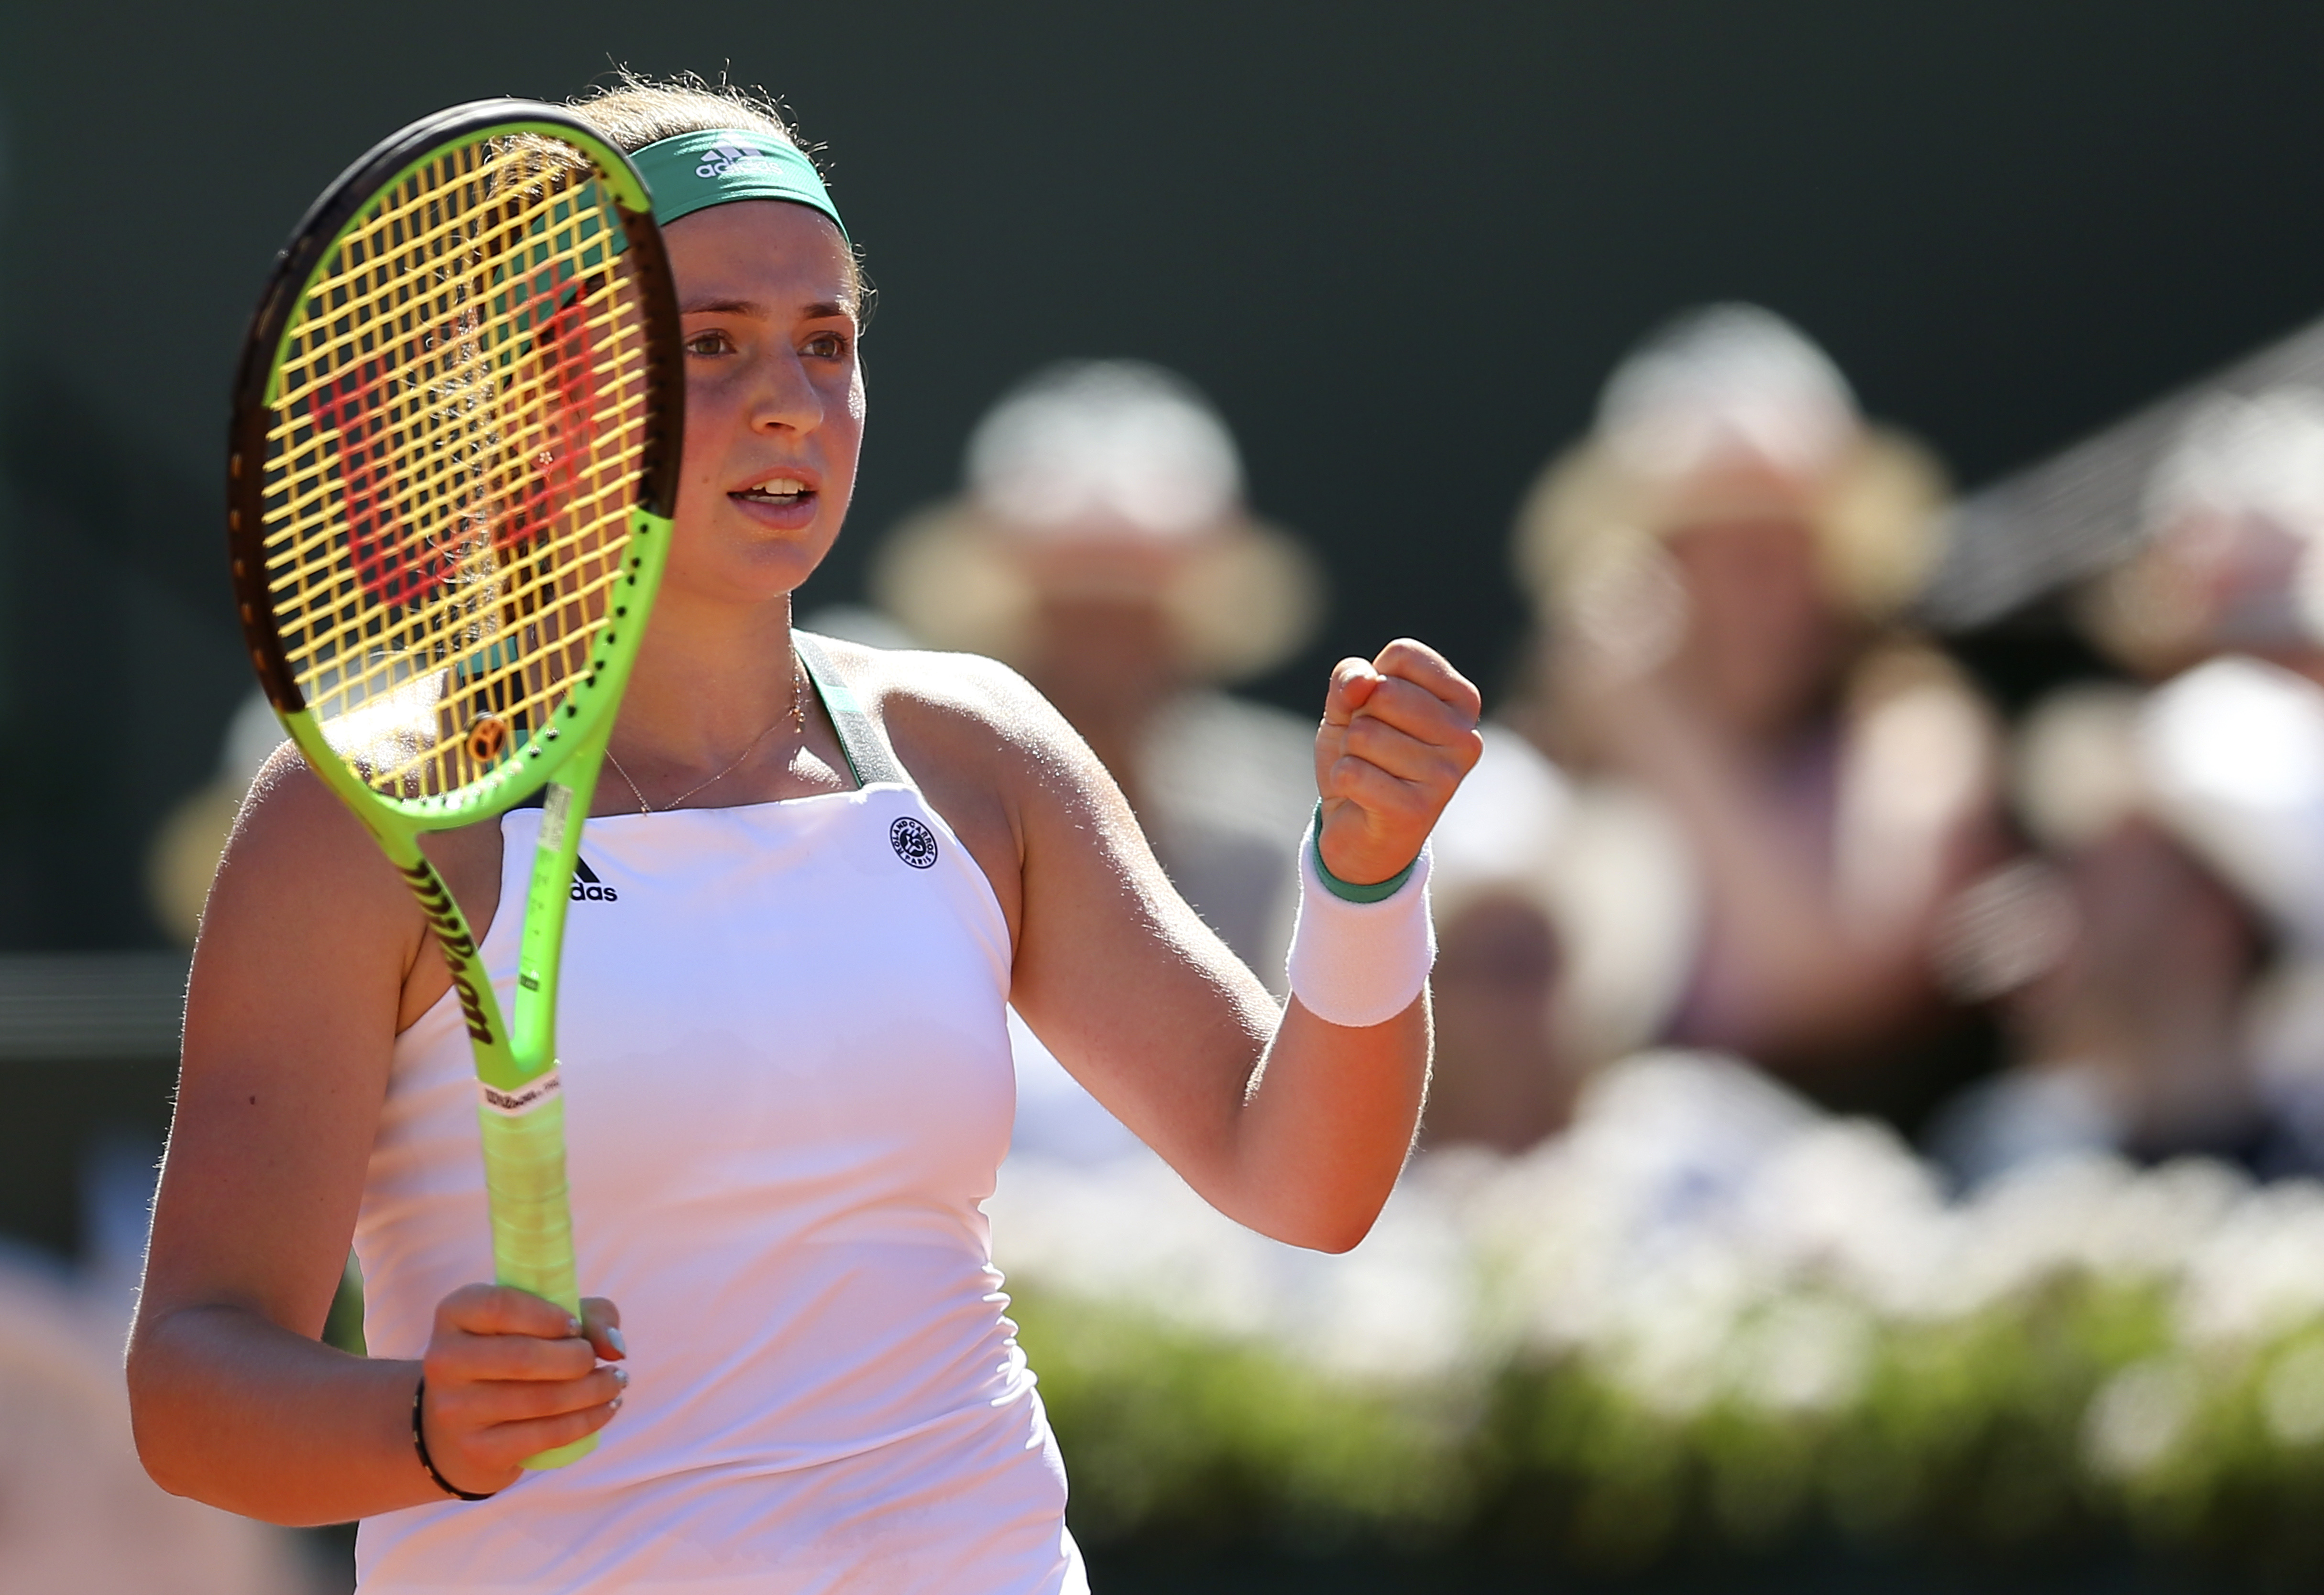 Latvia's Jelena Ostapenko celebrates winning a point as she plays Romania's Simona Halep during their final match of the French Open tennis tournament at the Roland Garros stadium, Saturday, June 10, 2017 in Paris. (AP Photo/David Vincent)